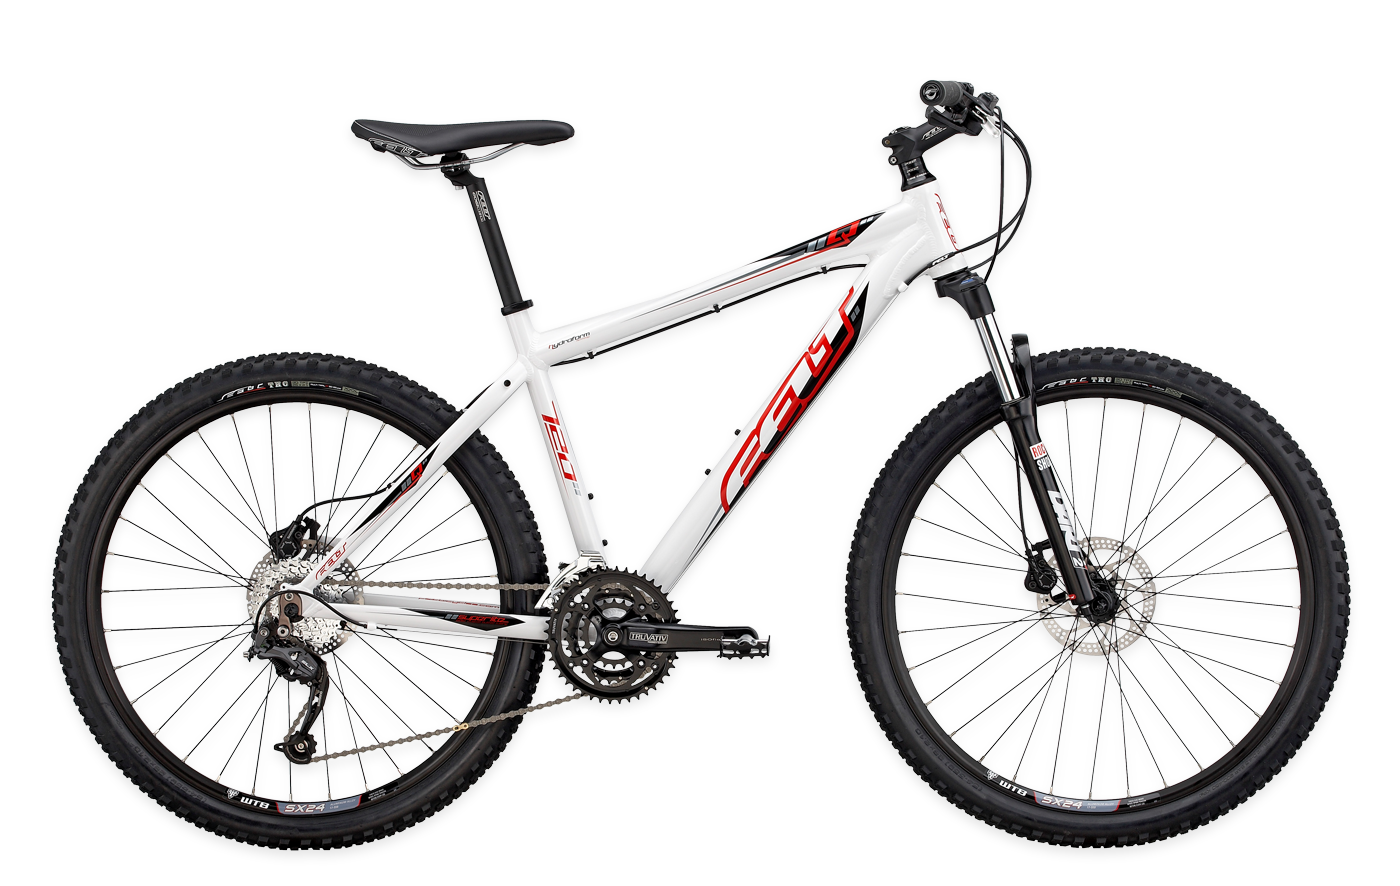 Bike Png HD Picture image #45182